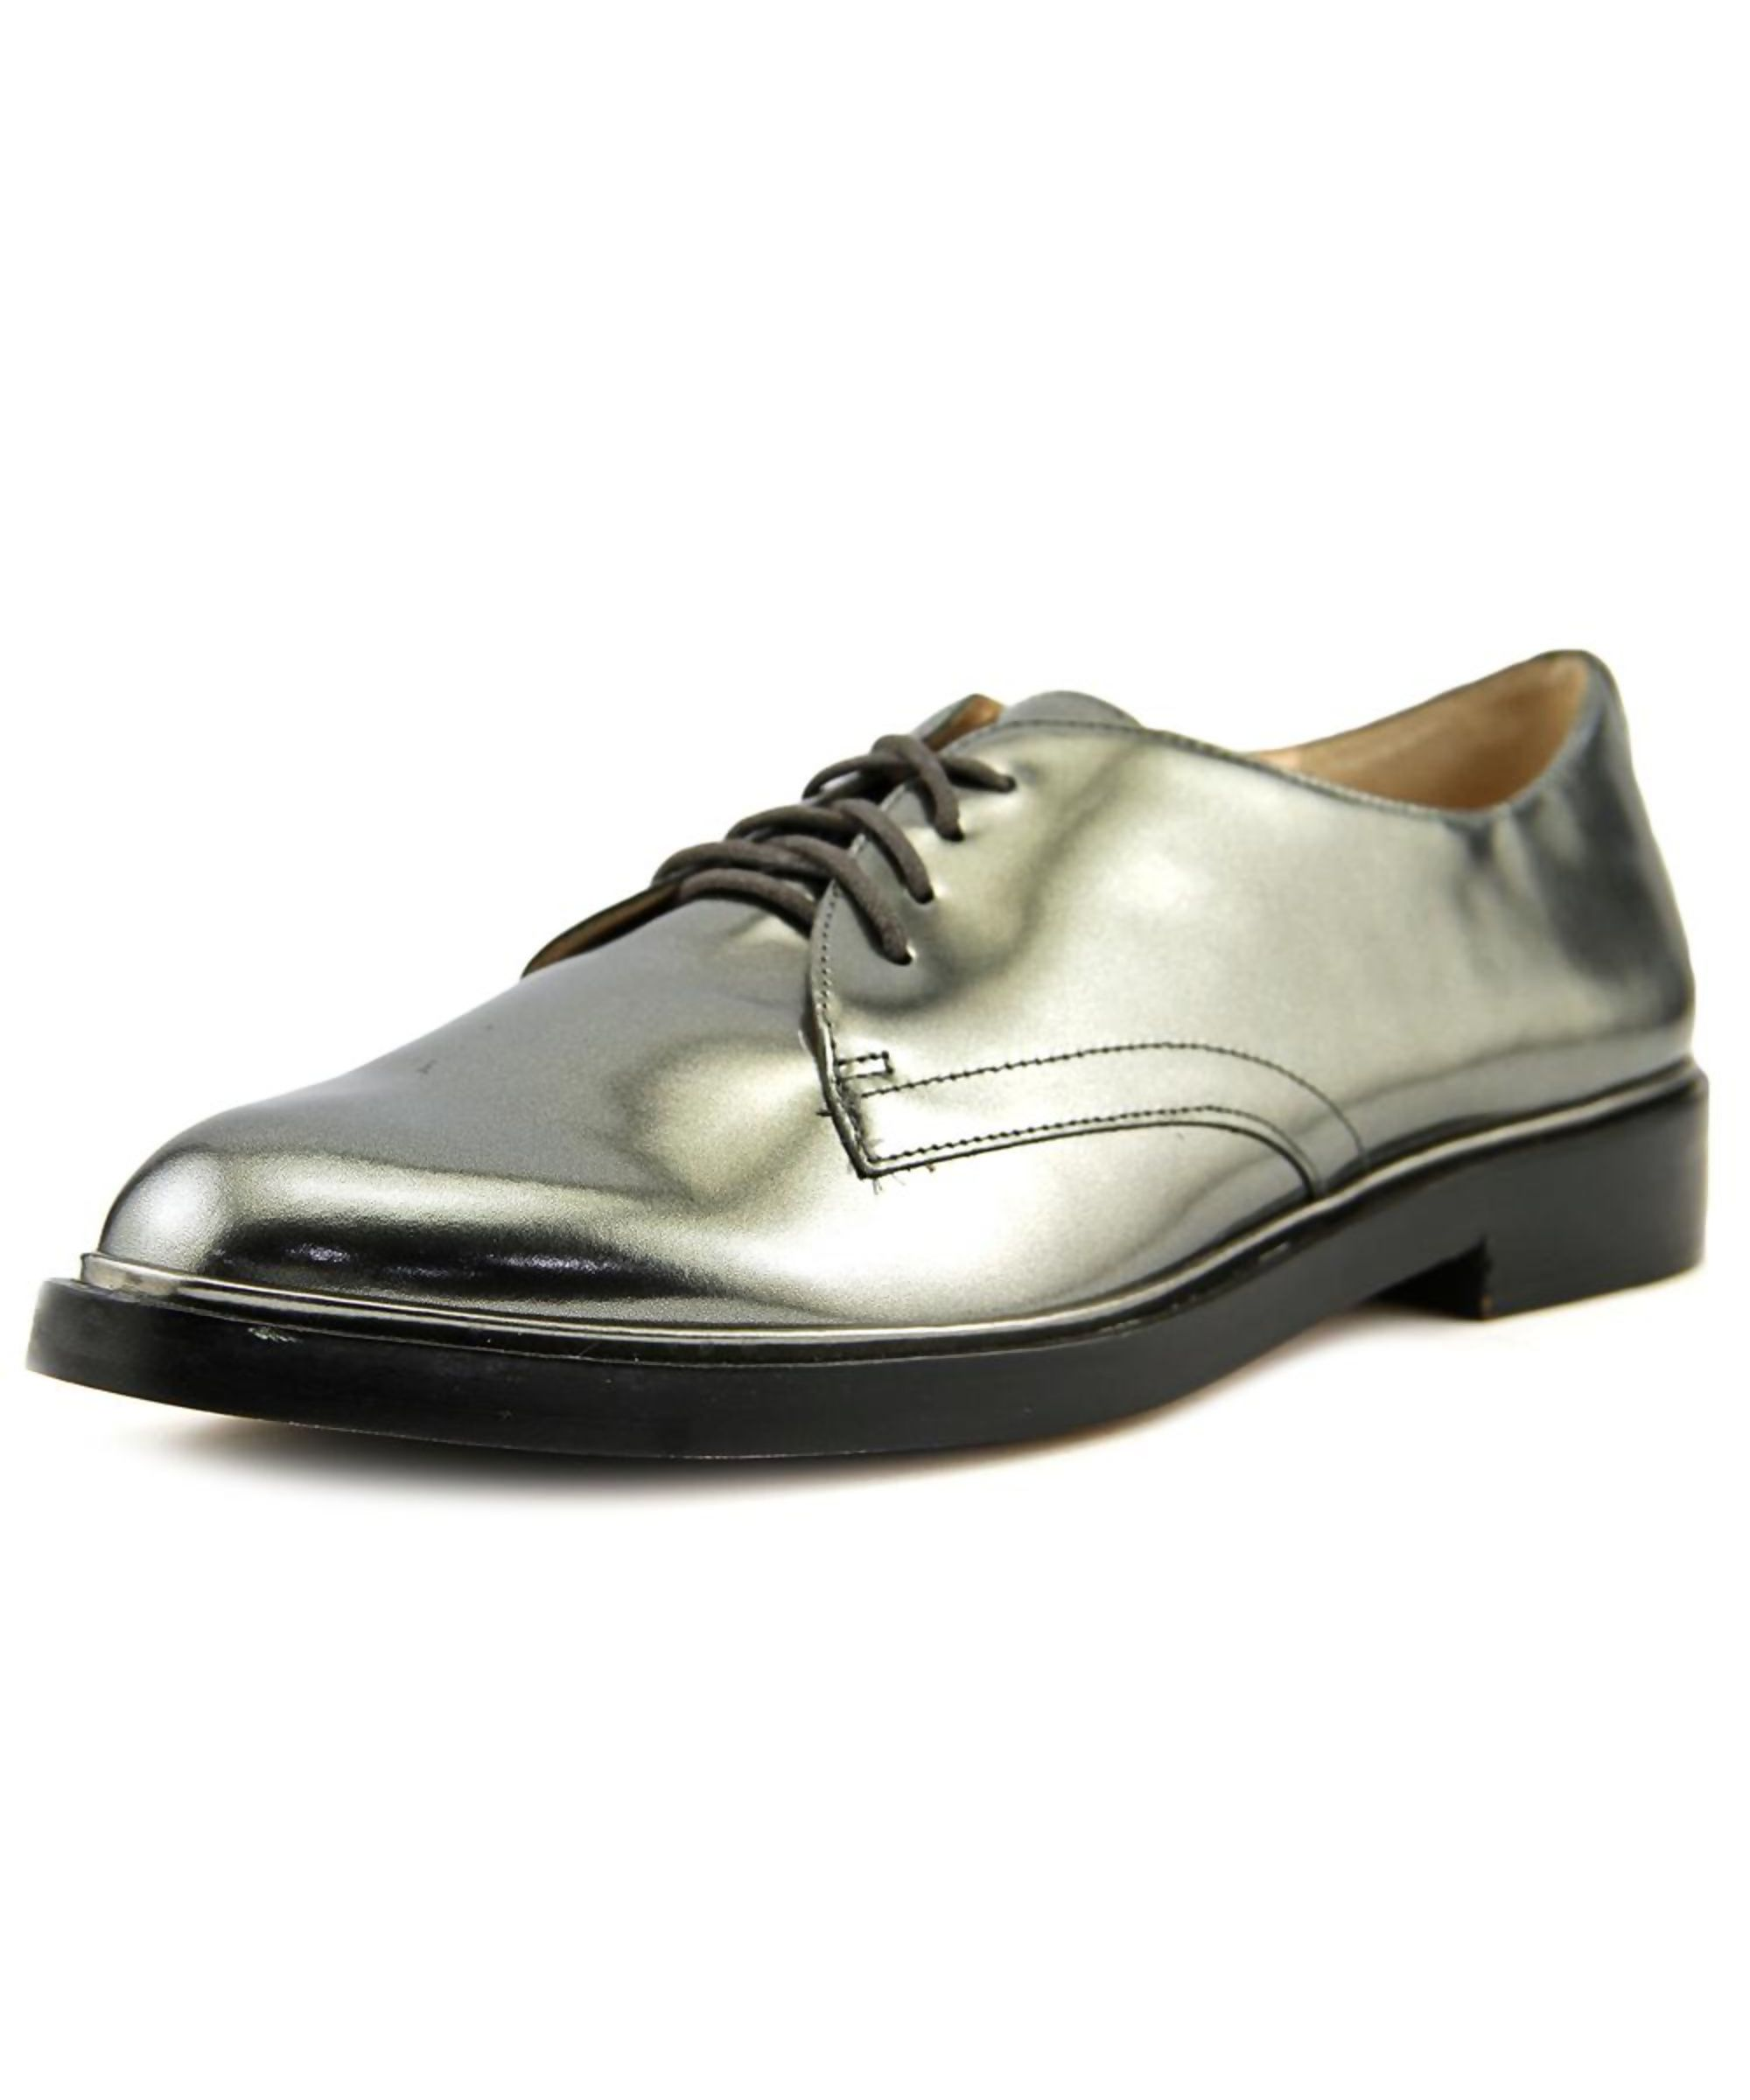 Femmes Vince Camuto Ciana Chaussures Oxfords mLBdy8Z